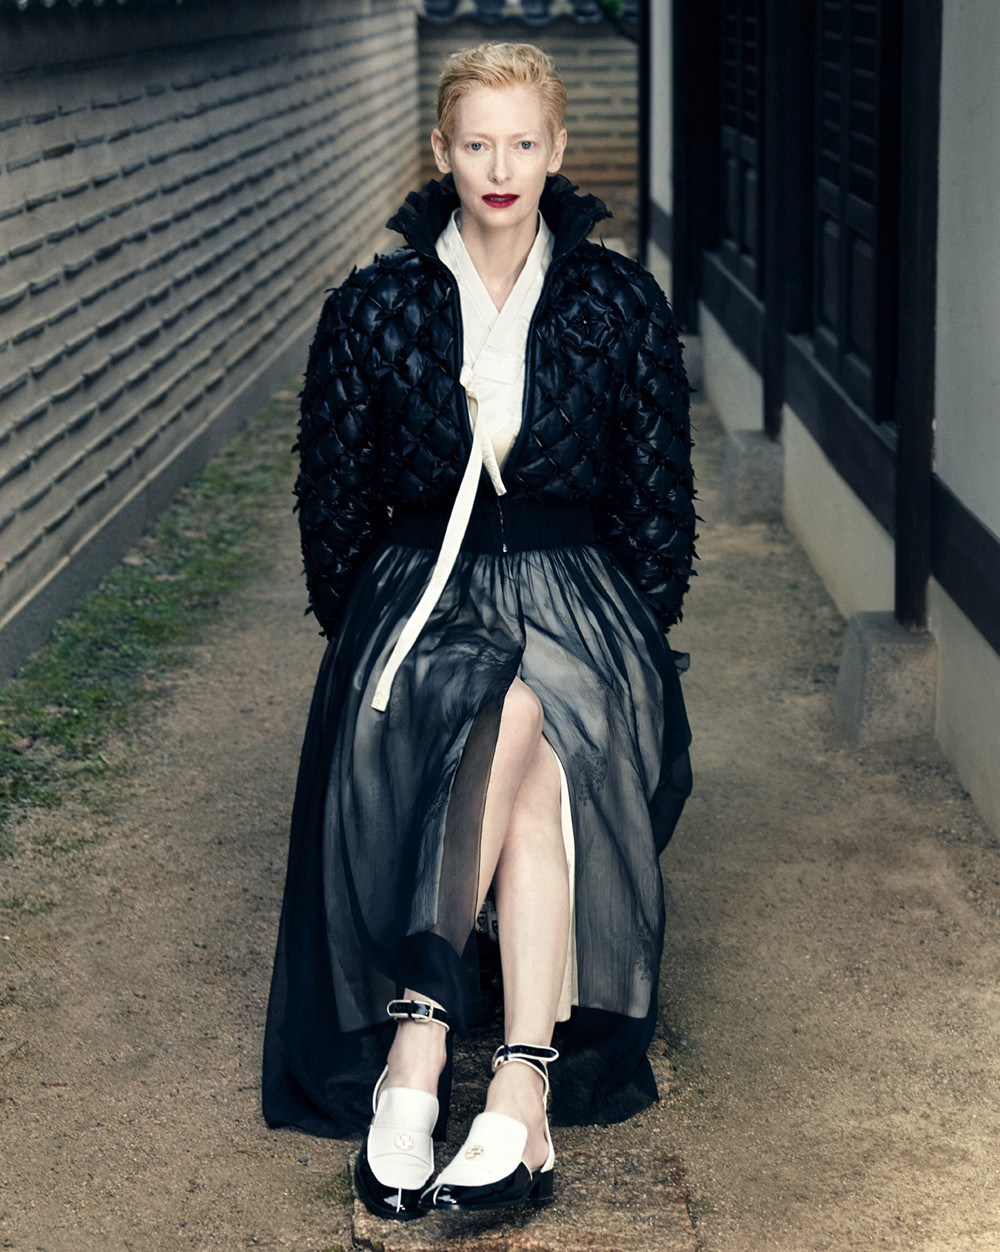 tilda-swinton-by-hong-jang-hyun-vogue-korea-august-2015-11